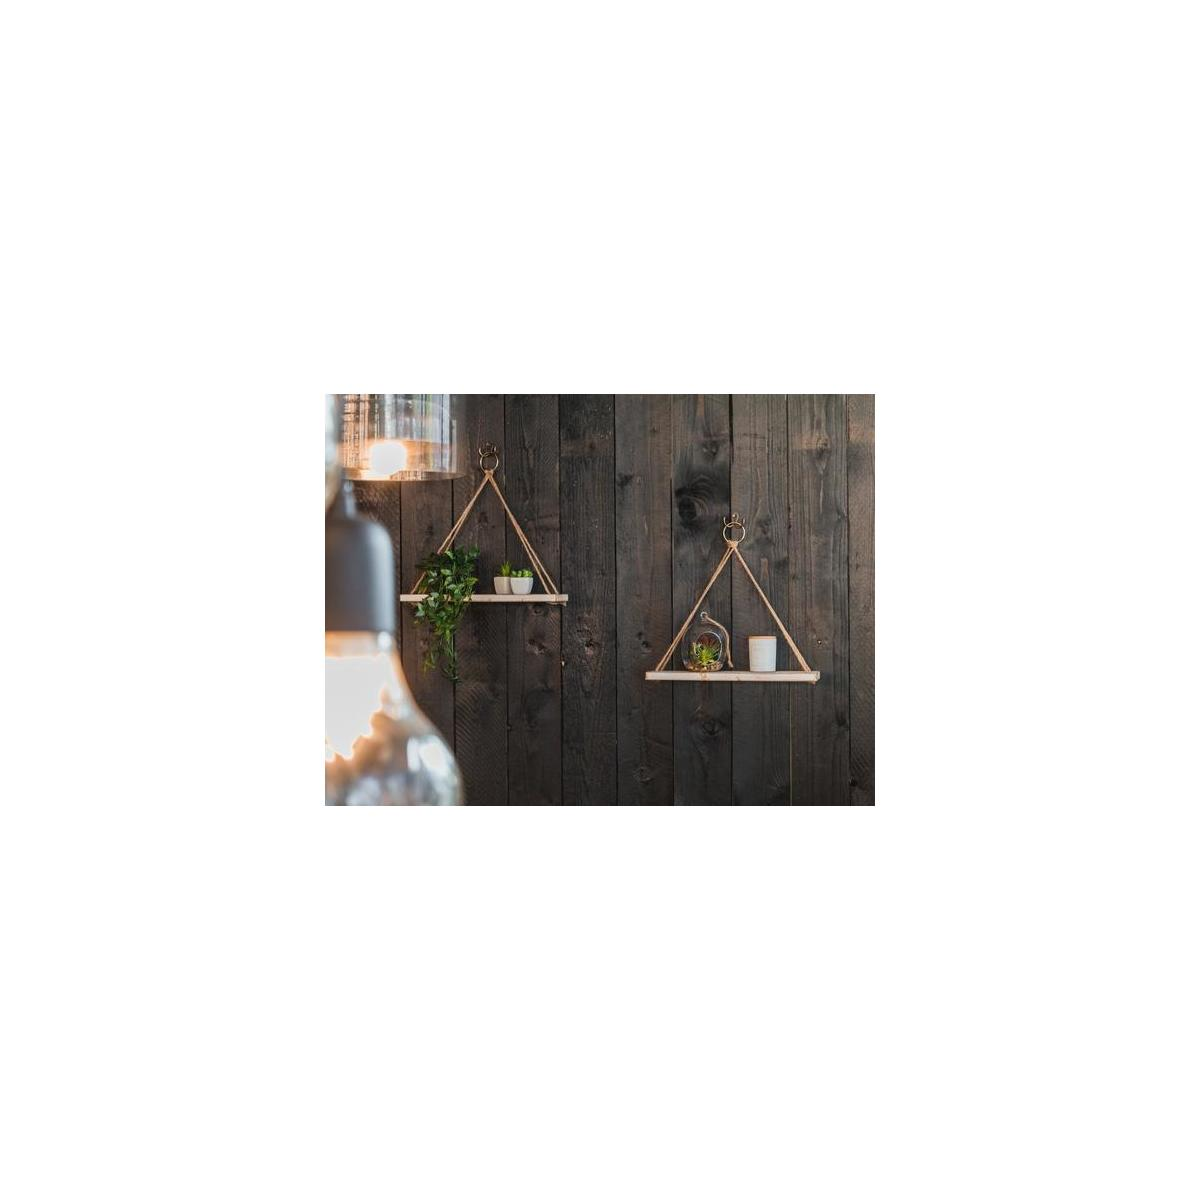 BAMB2 Floating Wall Shelves (Set of 2) – Farmhouse Plant Hangers for Home & Office – Rustic Home Décor – Mounting Accessories Included – Practical and Sturdy Design – Ideal for Pots, Books, Frames